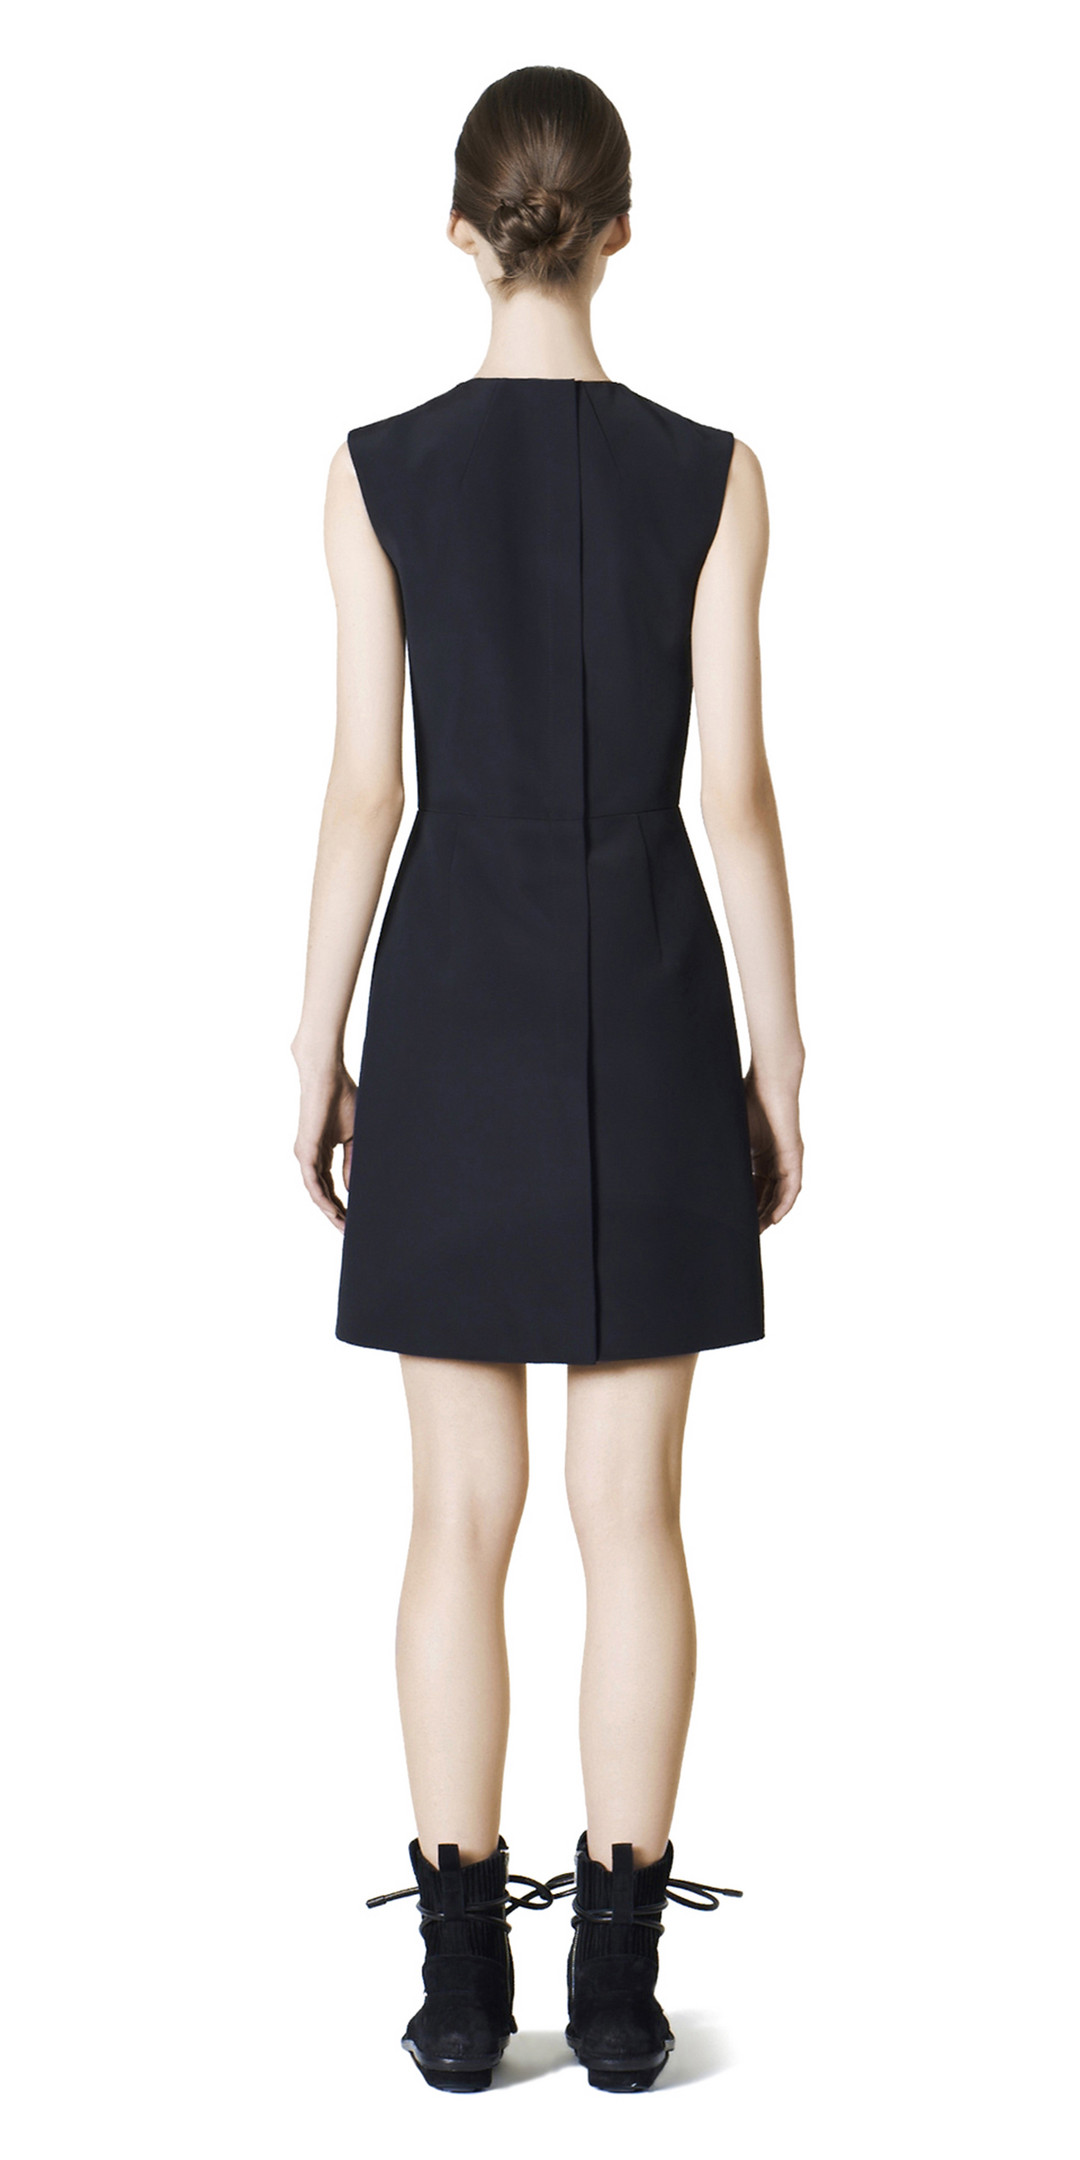 BALENCIAGA Dress D Balenciaga Shoe Lace Dress i